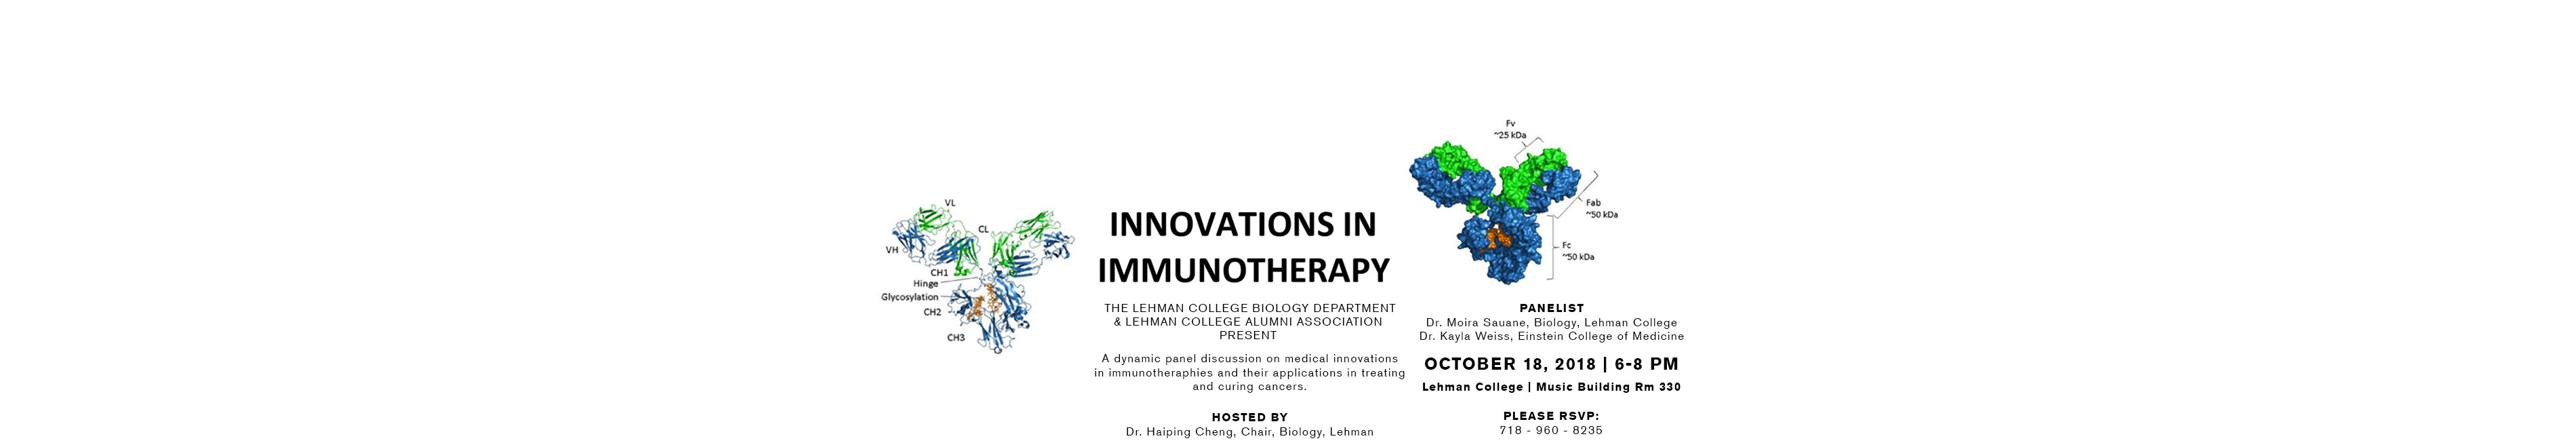 Innovations in Immunotherapy